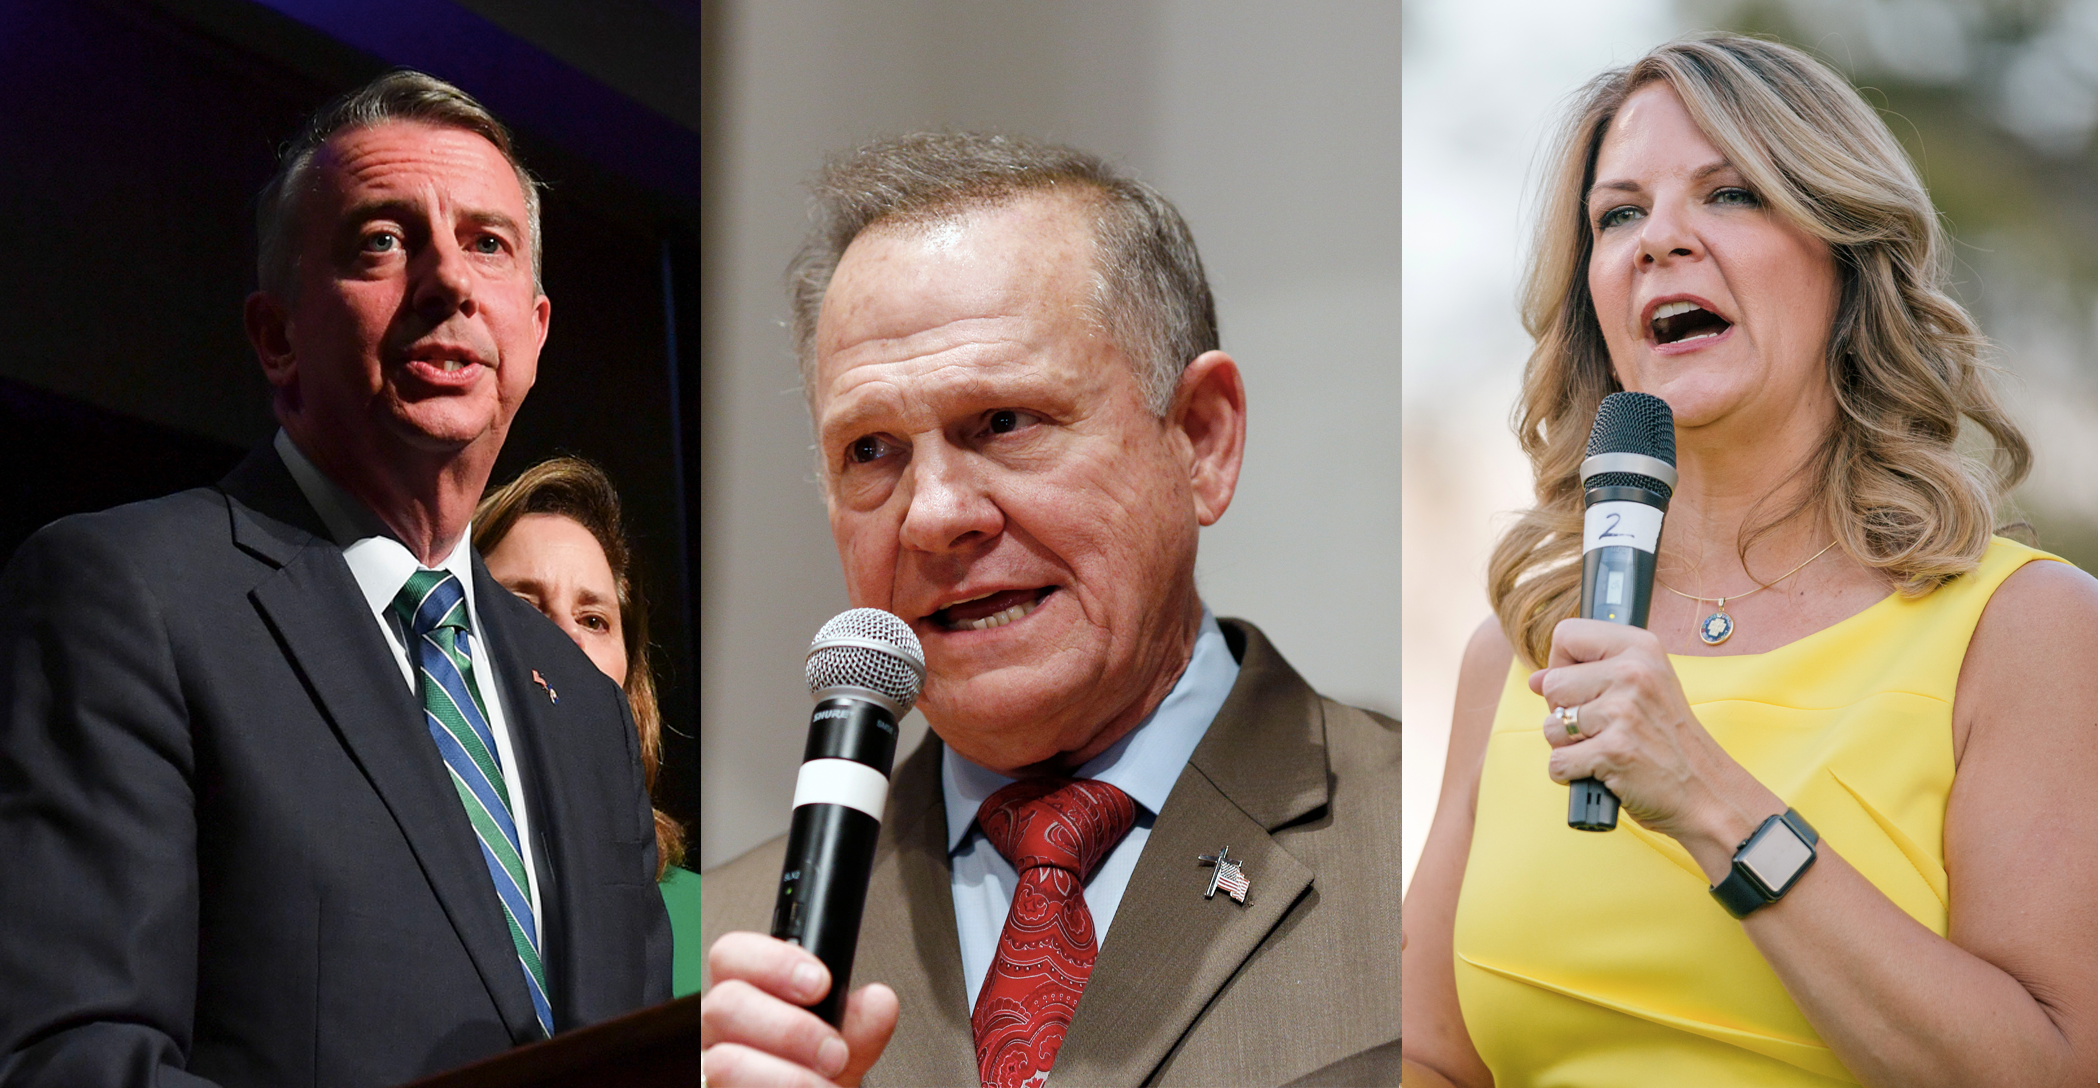 From left, former candidates Ed Gillespie, Roy Moore and Kelli Ward all ran anti-Muslim campaigns — and lost.